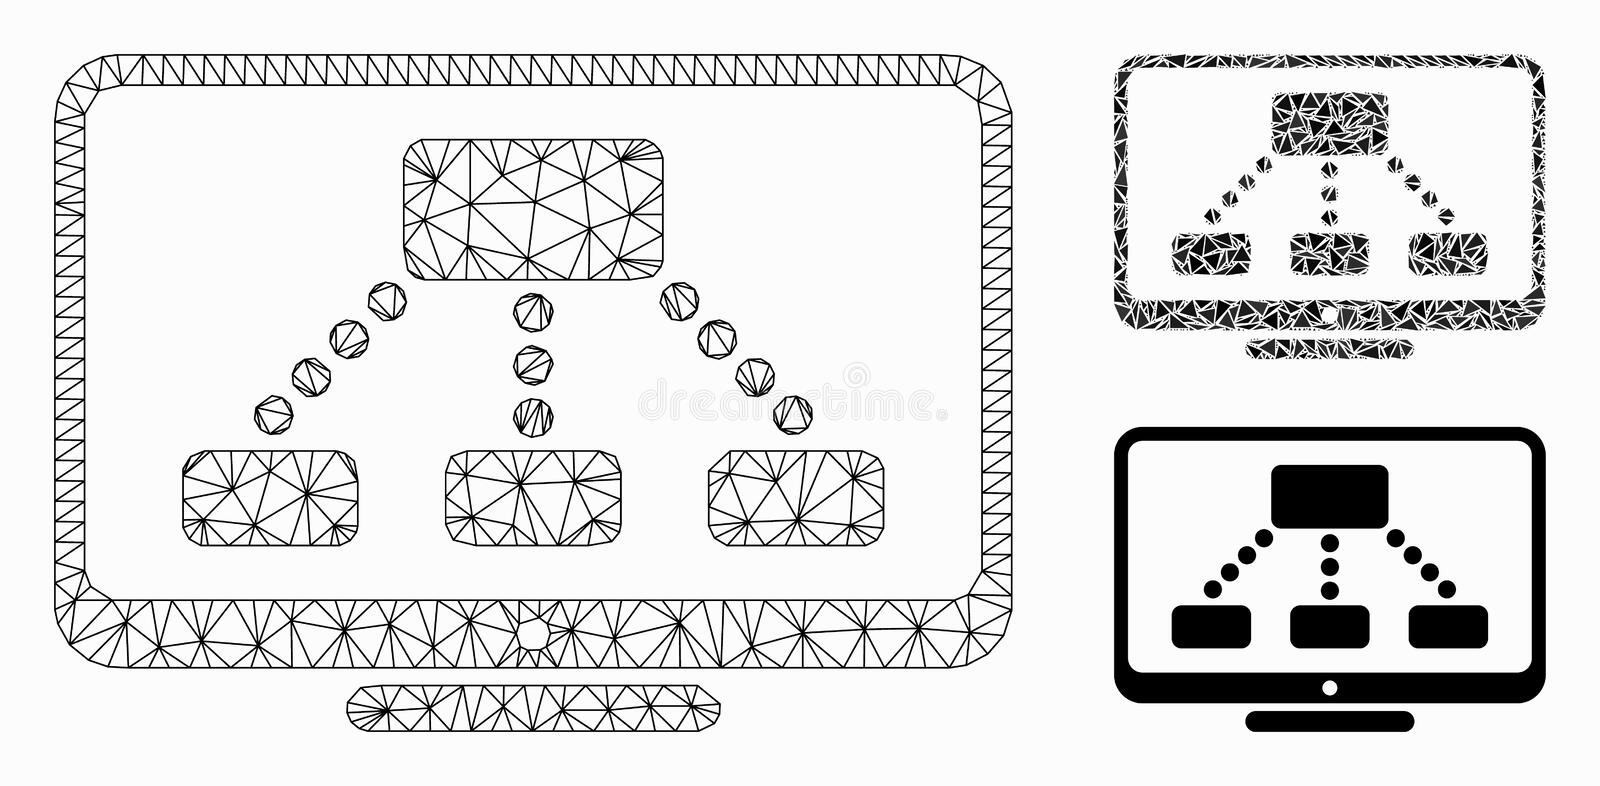 Hierarchy Monitor Vector Mesh 2D Model and Triangle Mosaic Icon stock illustration